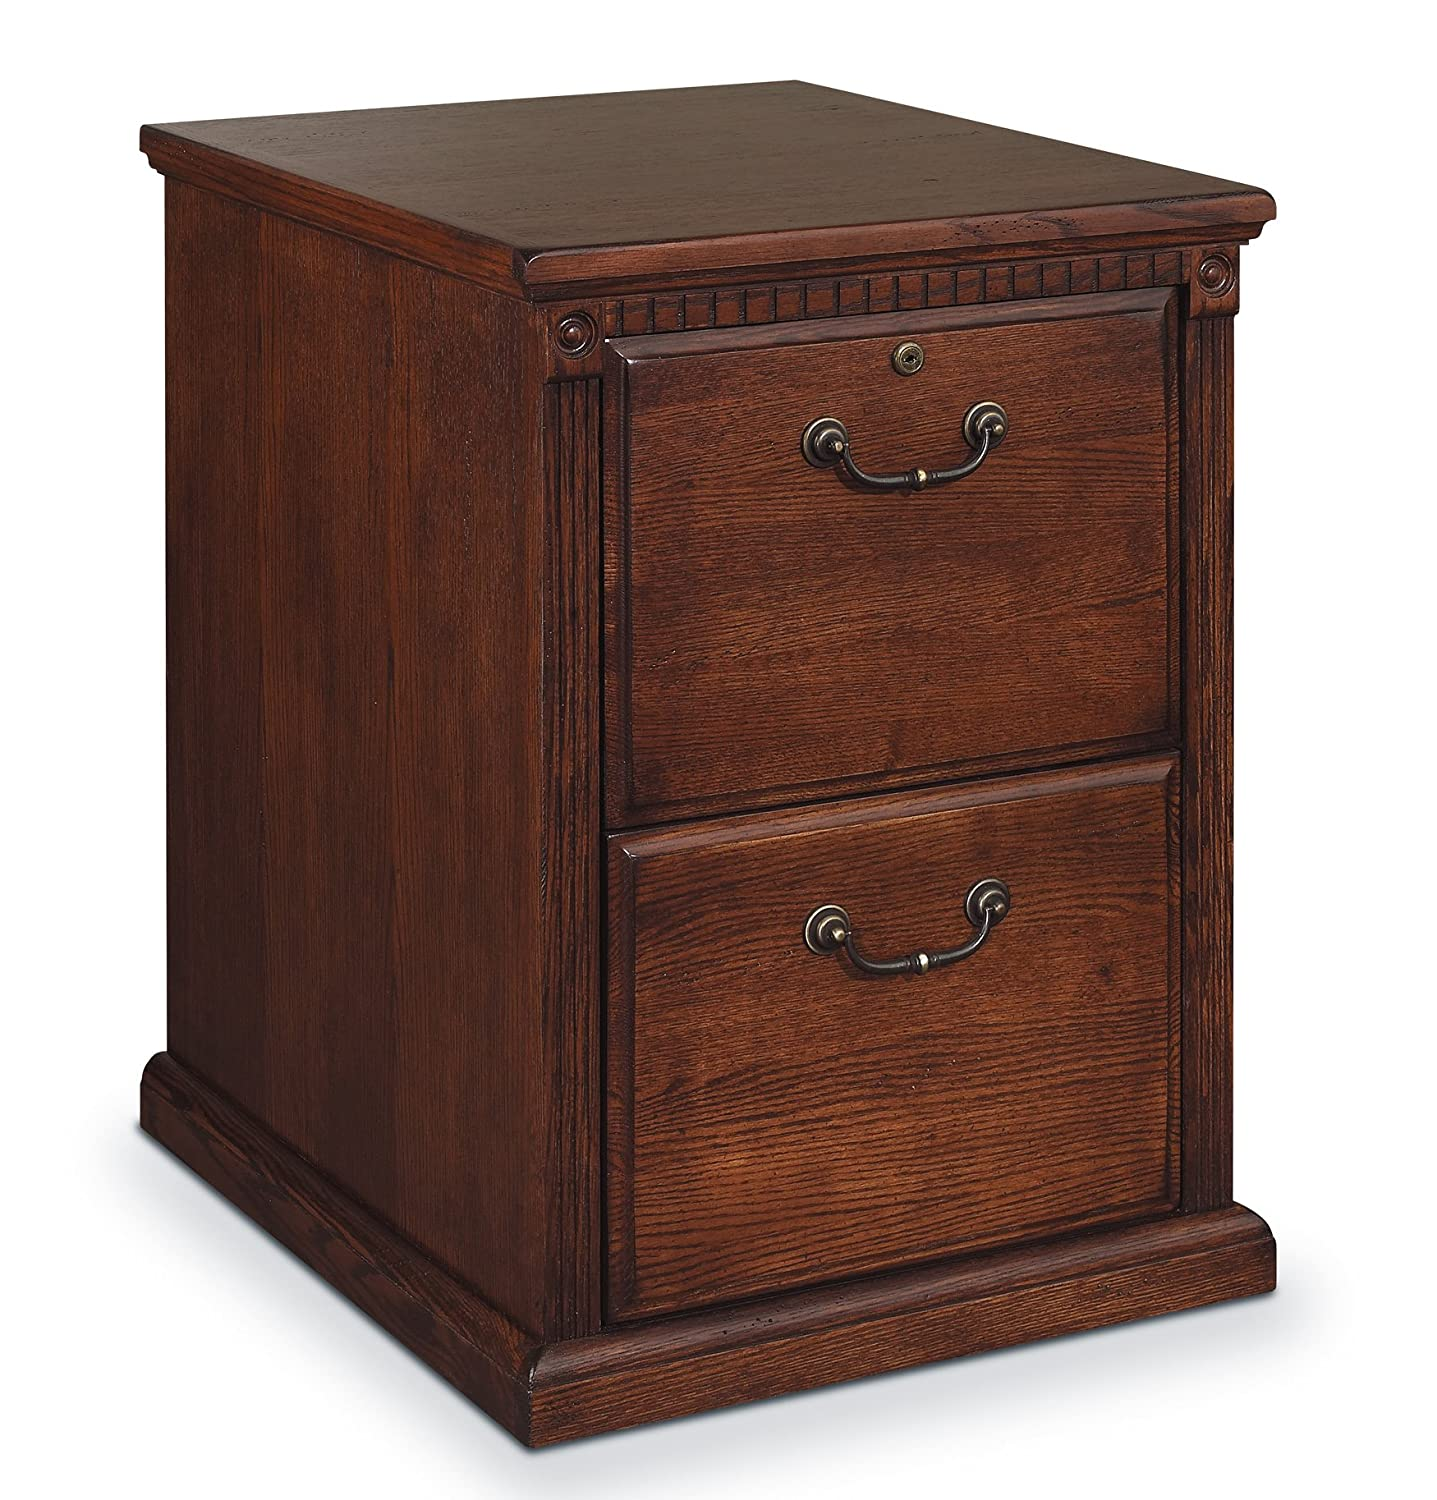 hayneedle cabinets two cabinet wood product hampton belham oak living wooden white drawer master cfm file whiteoak